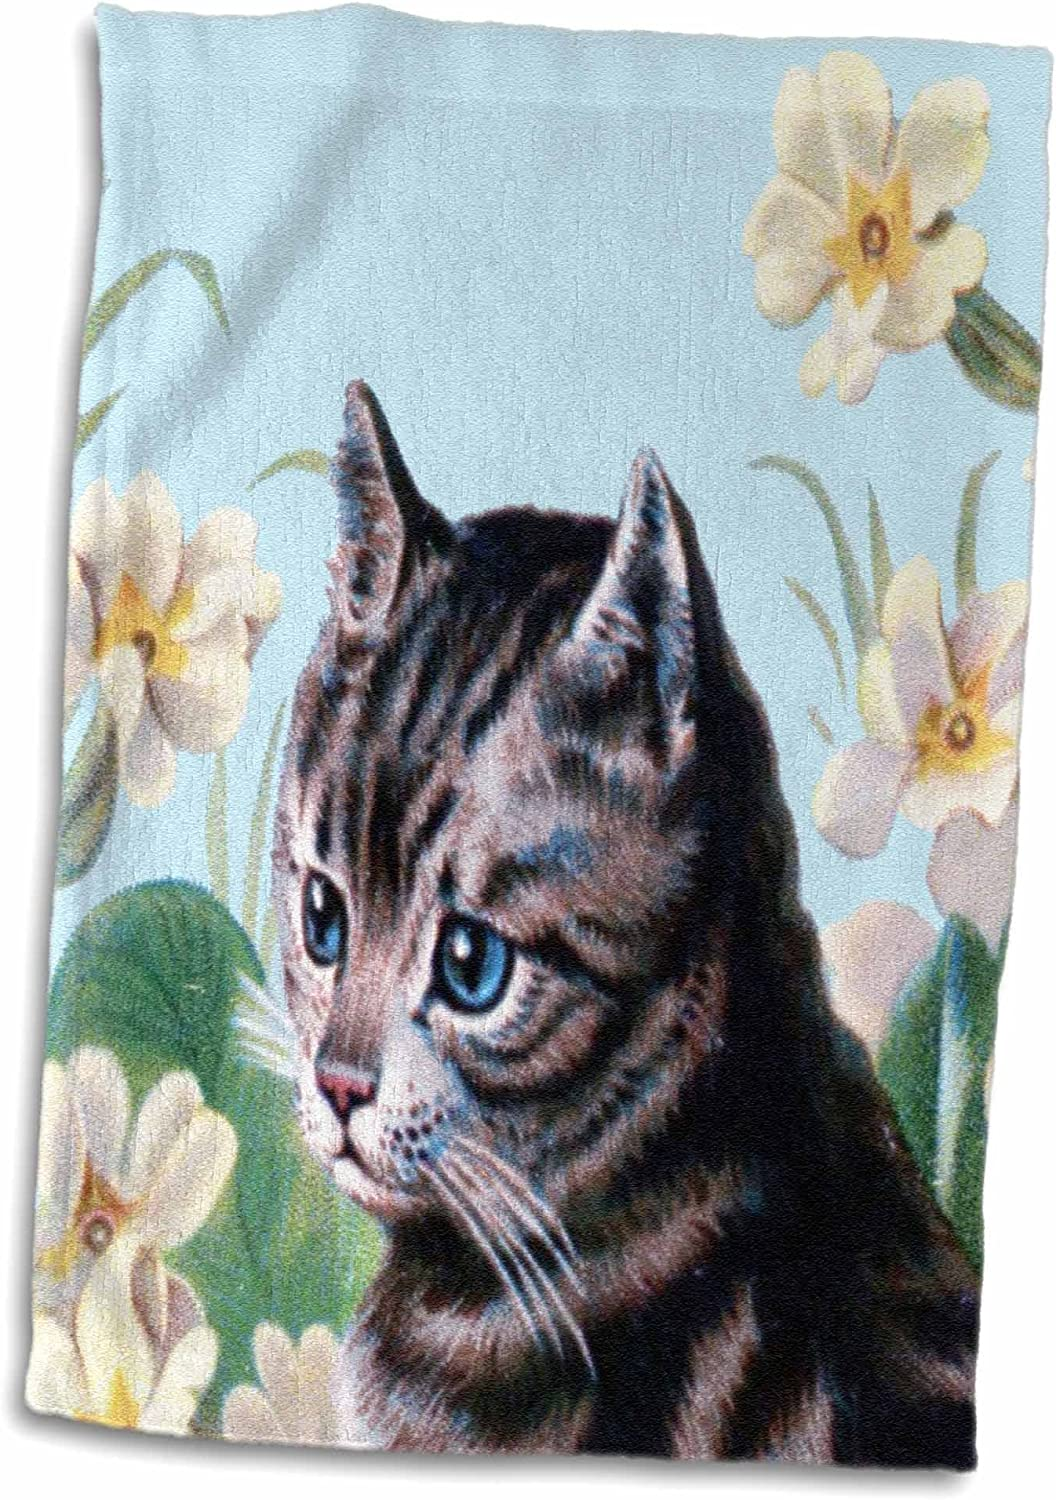 Amazon Com 3d Rose Cute Grey Kitten Vintage Art Tabby Cat With Sweet Blue Eyes In Garden White Flowers Gray Kitty Towel 15 X 22 Multicolor Home Kitchen